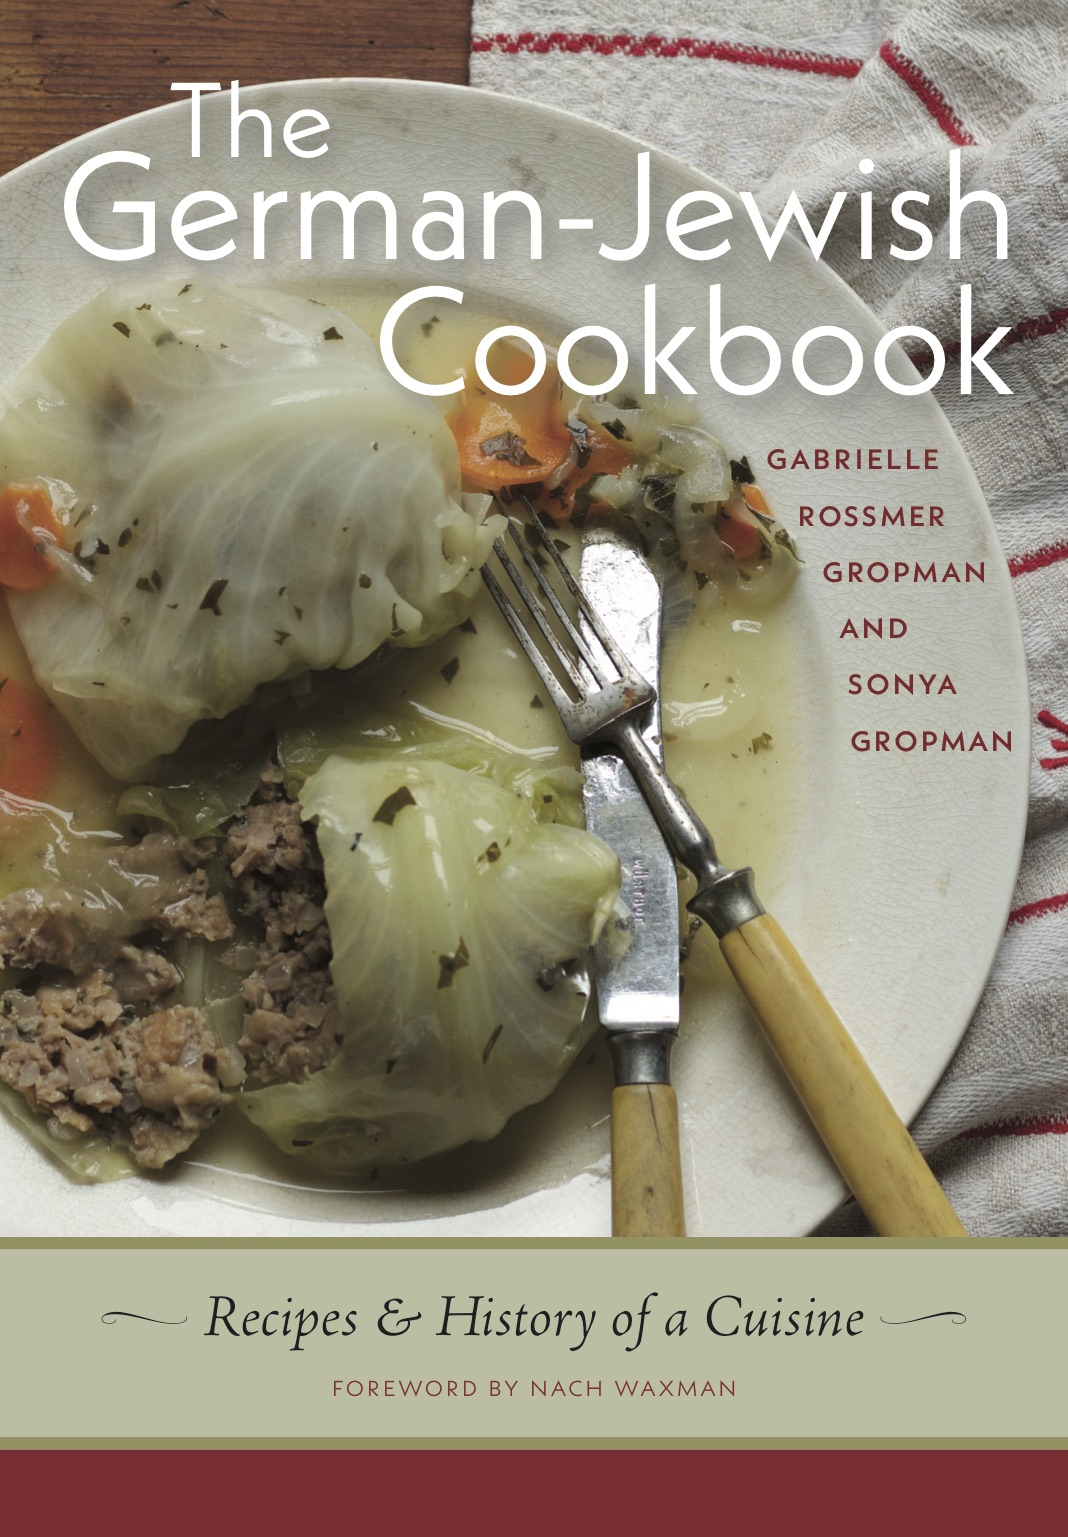 Book Launch: The German-Jewish Cookbook by Gabrielle Rossmer Gropman & Sonya Gropman — in conversation w/ Jane Ziegelman